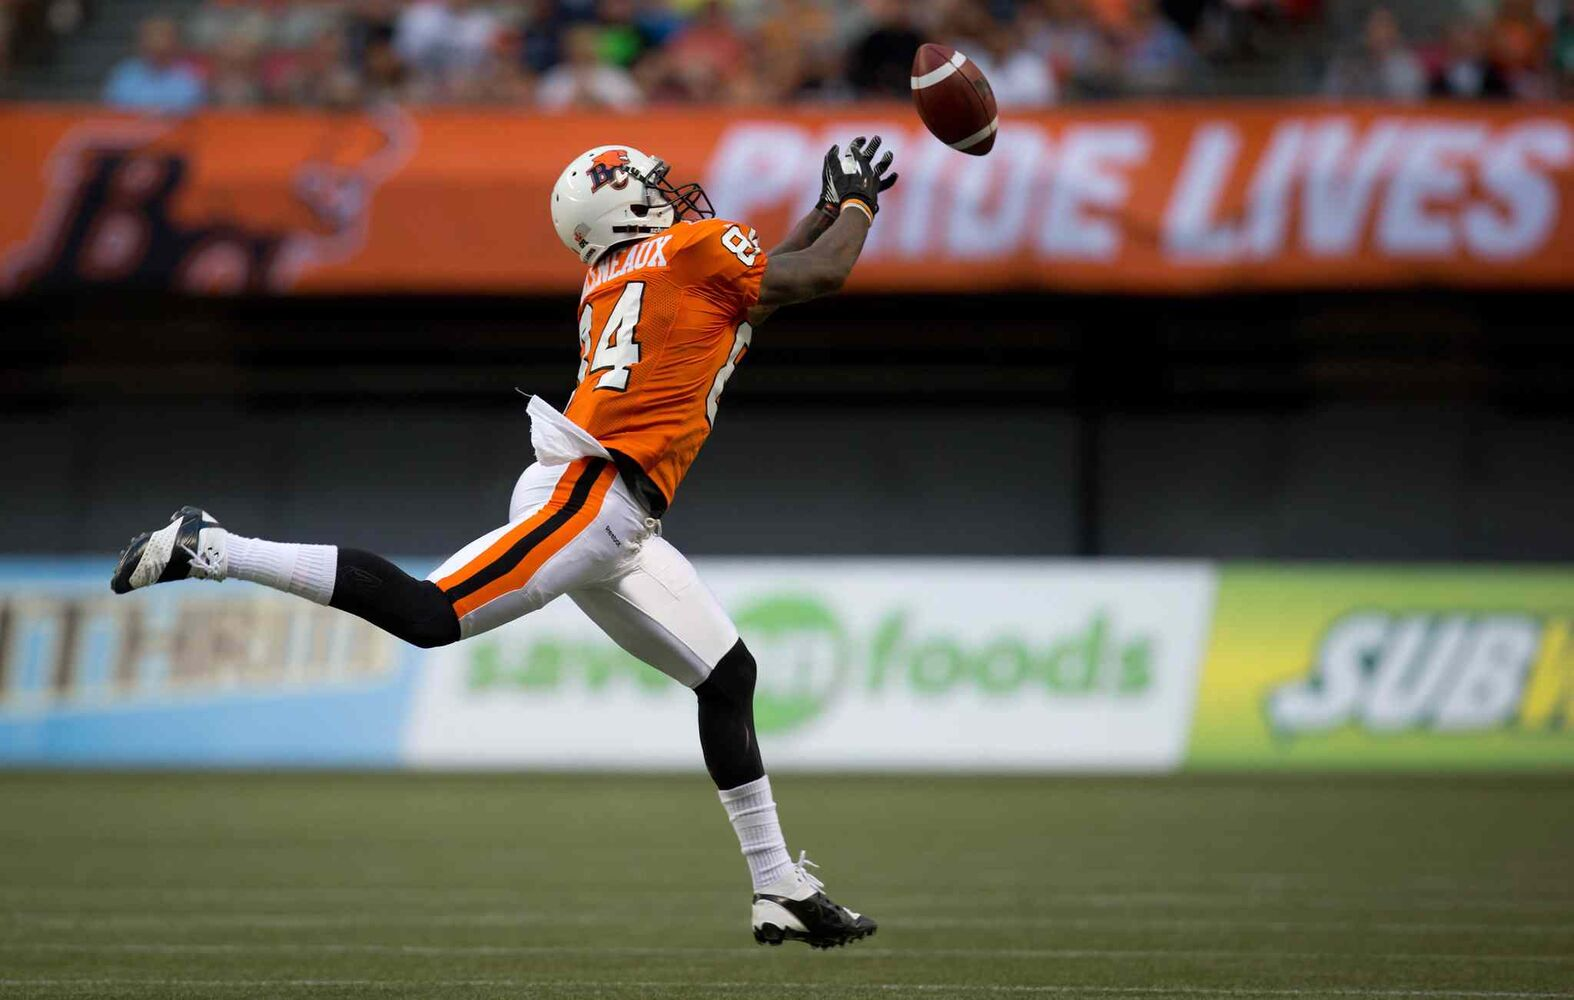 B.C. Lions' Emmanuel Arceneaux reaches but fails to make the reception during the first half of Friday's game. (DARRYL DYCK / THE CANADIAN PRESS)